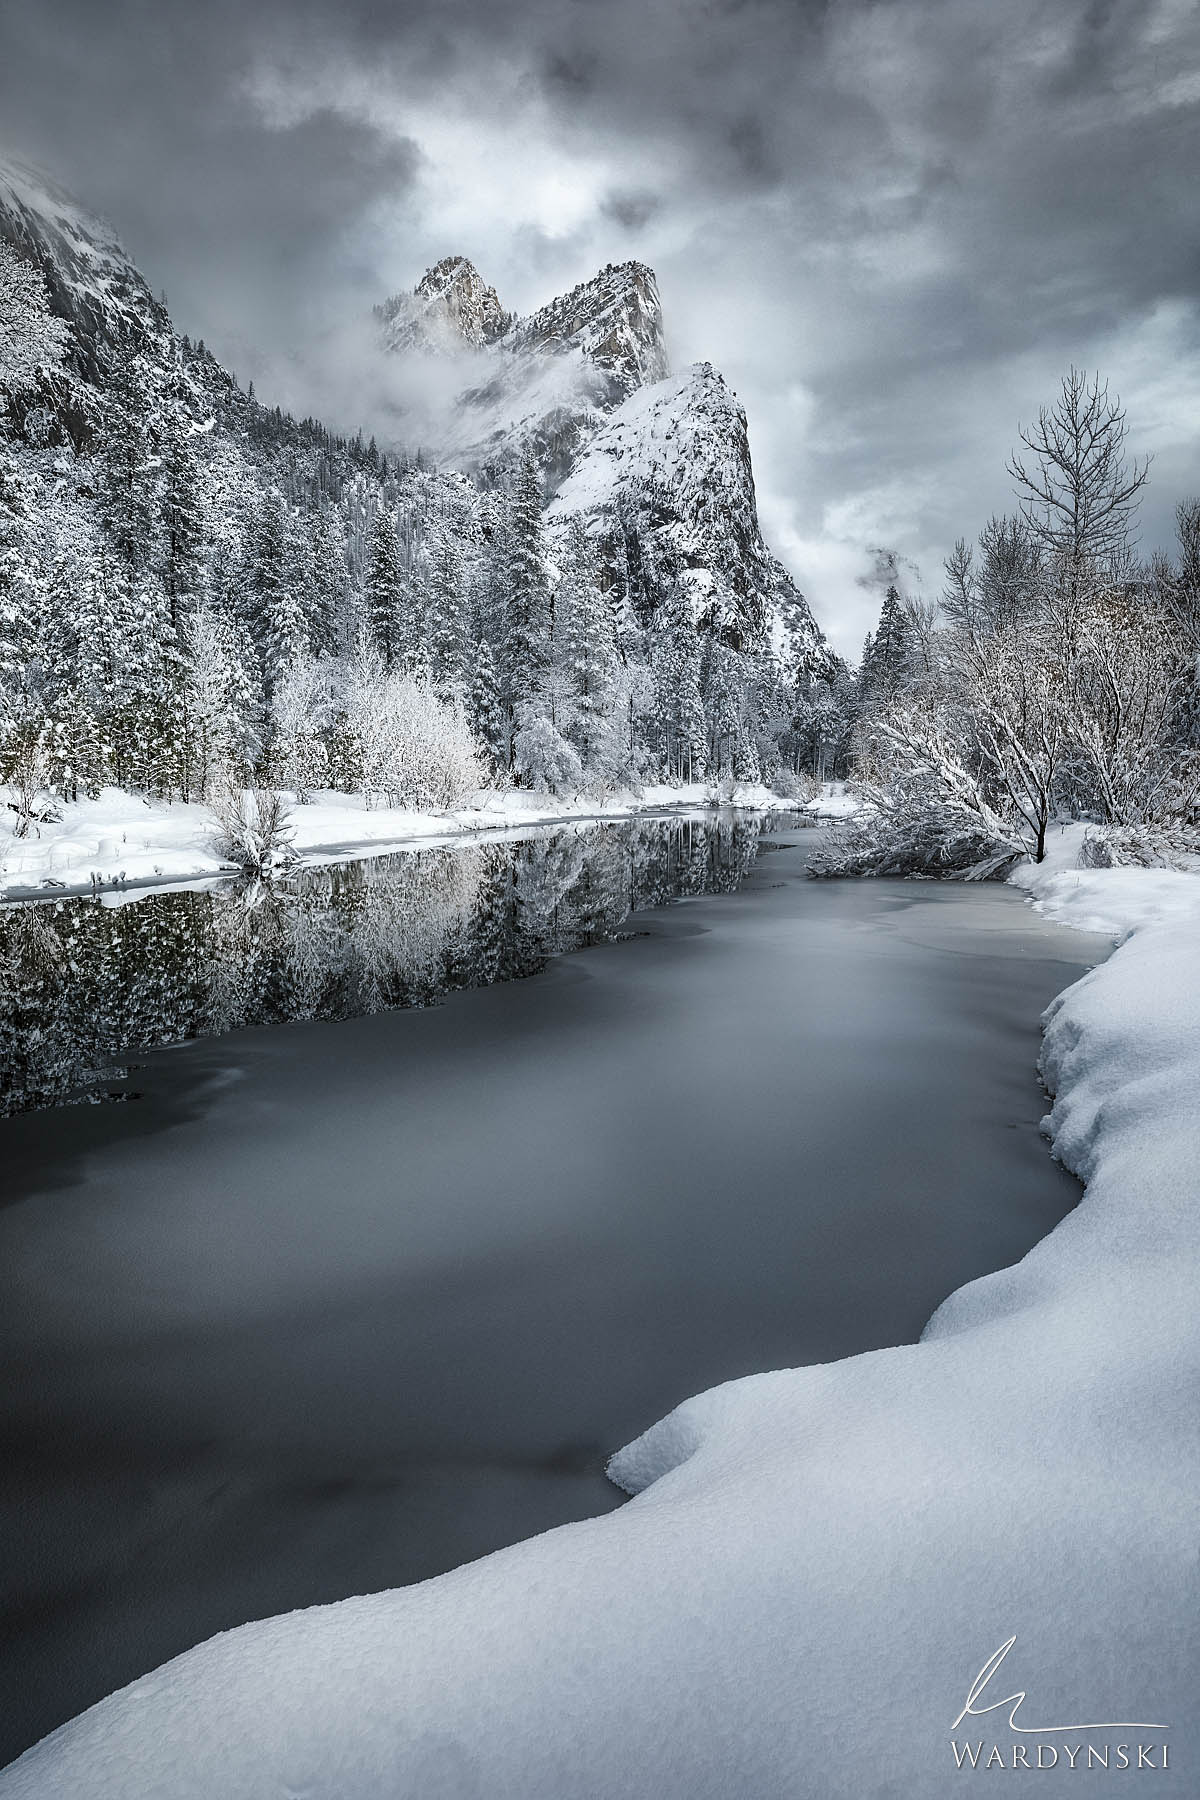 Fine Art Print | Limited Edition of 100  The Three Brothers tower over the Merced River in Yosemite National Park. The highest...